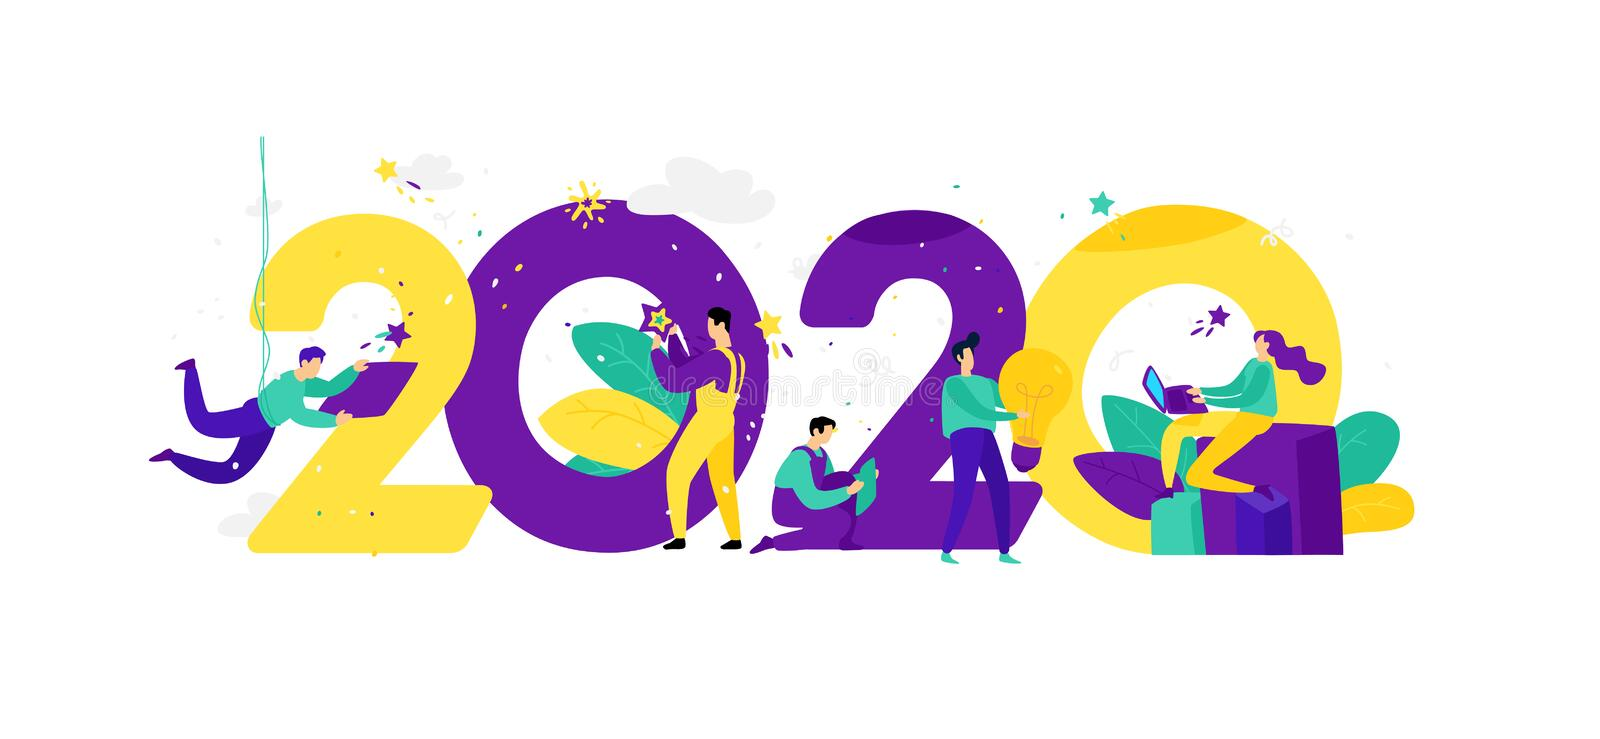 Illustration for the New Year 2020. Vector. People work around numbers. Businessmen celebrate Christmas. Employees in the office stock illustration